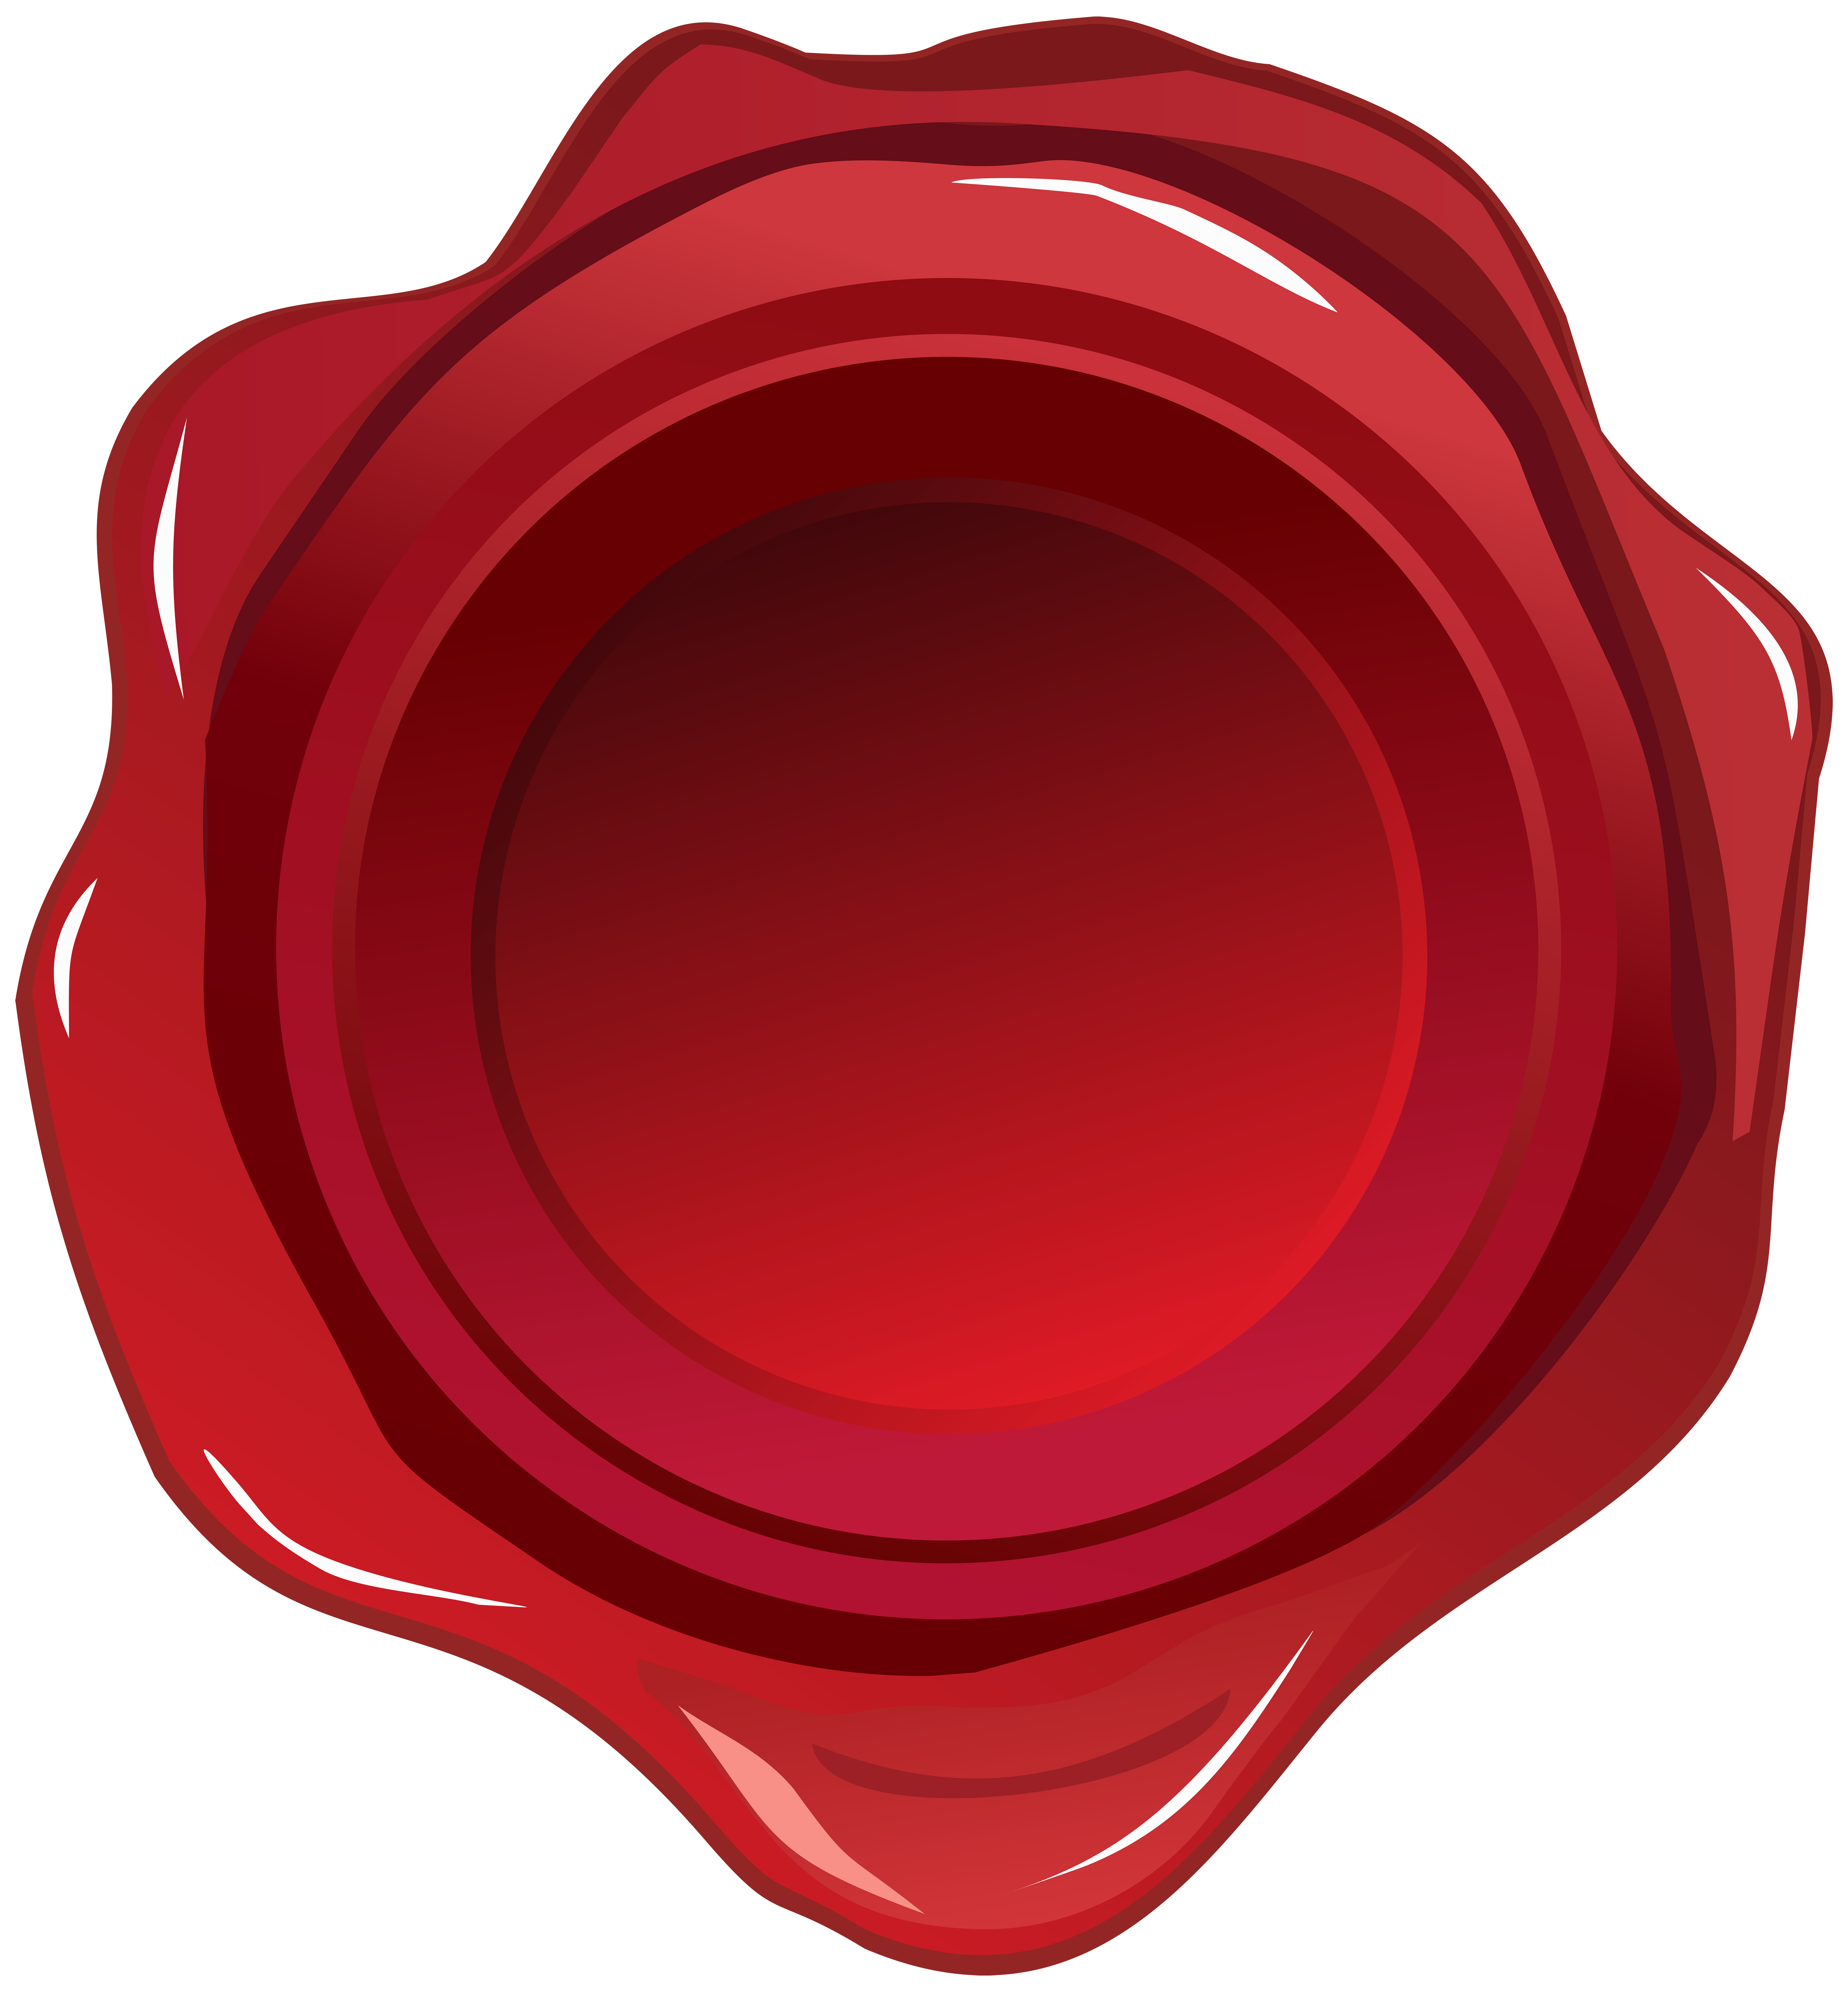 Red wax seal png. Clip art image gallery